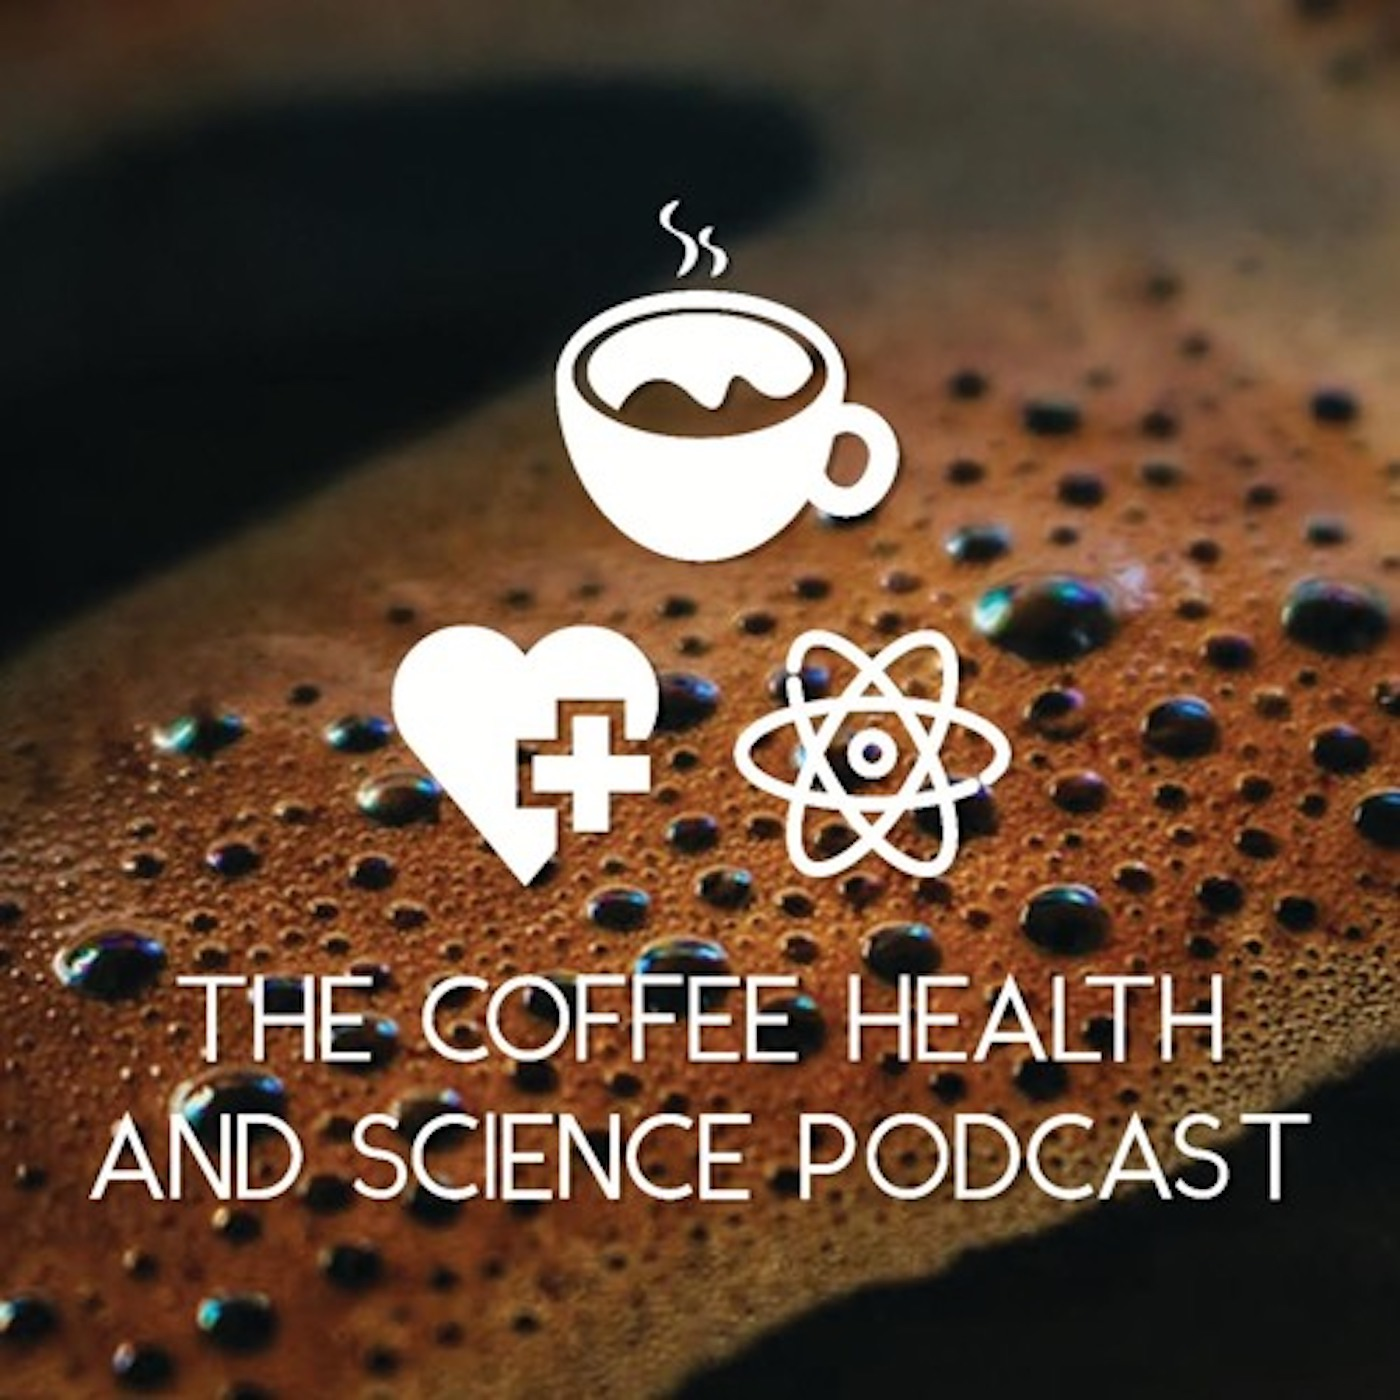 Coffee Roasting's Effects on Health, Acidity, and Chemistry, with Ildi Revi